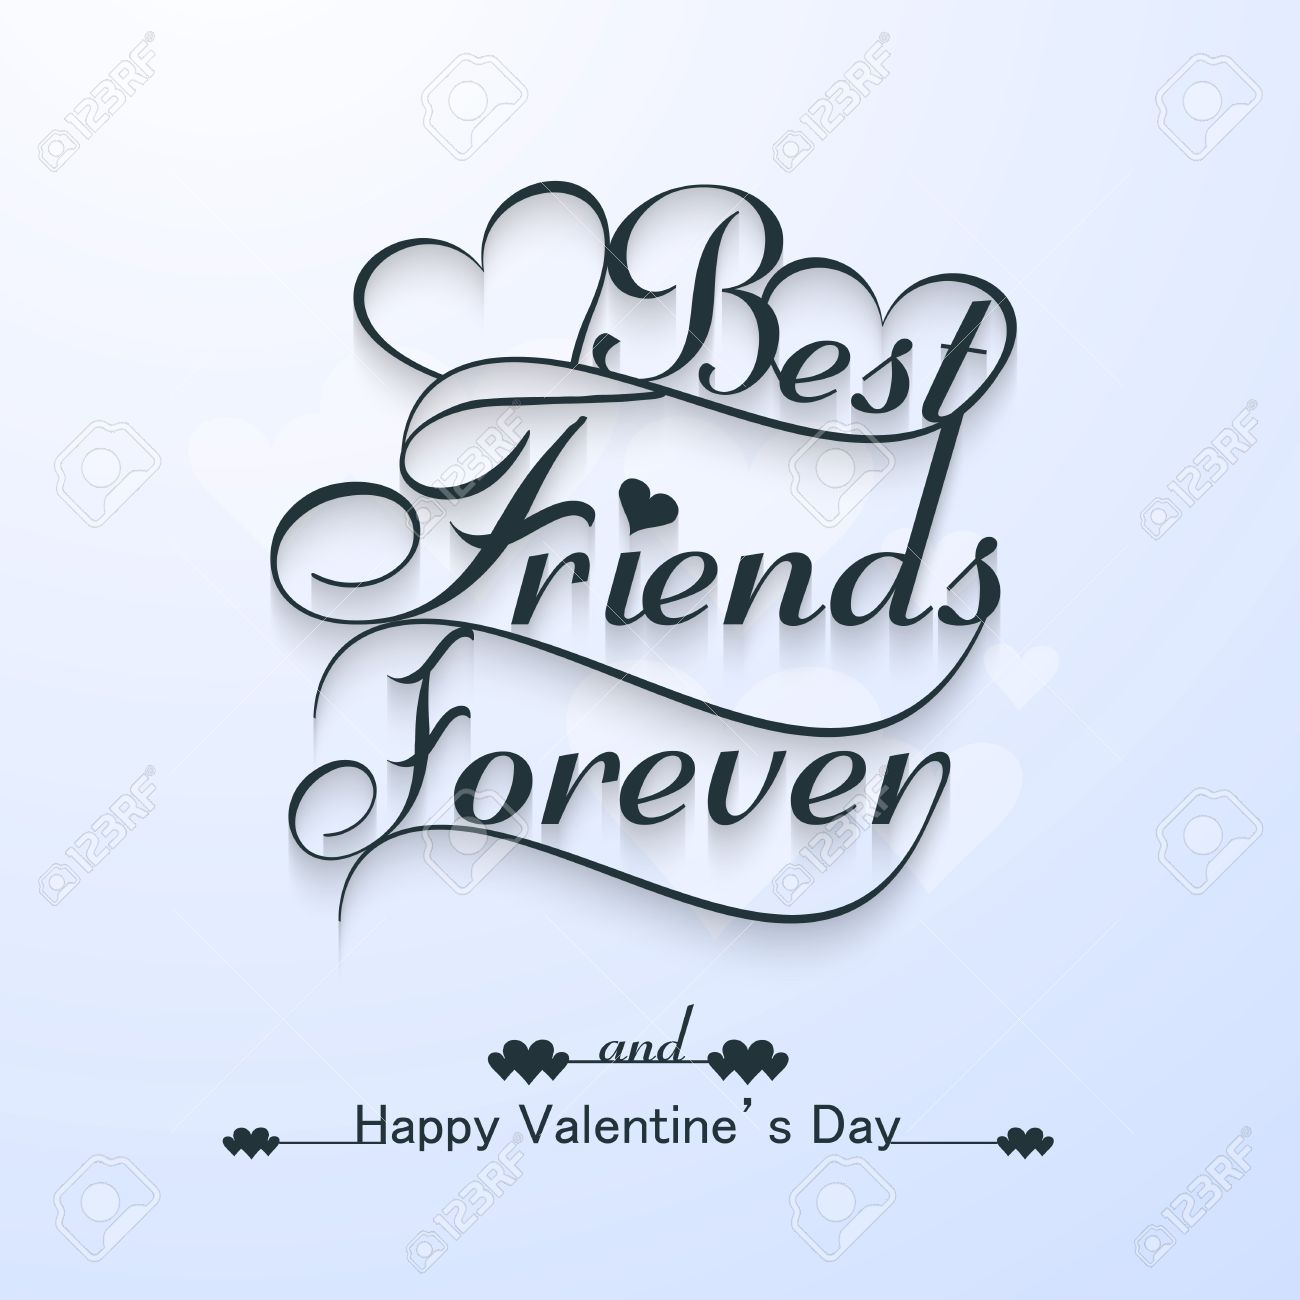 Beautiful Best Friends Forever For Happy Valentineu0027s Day Stylish Text  Design Vector Stock Vector   25402381